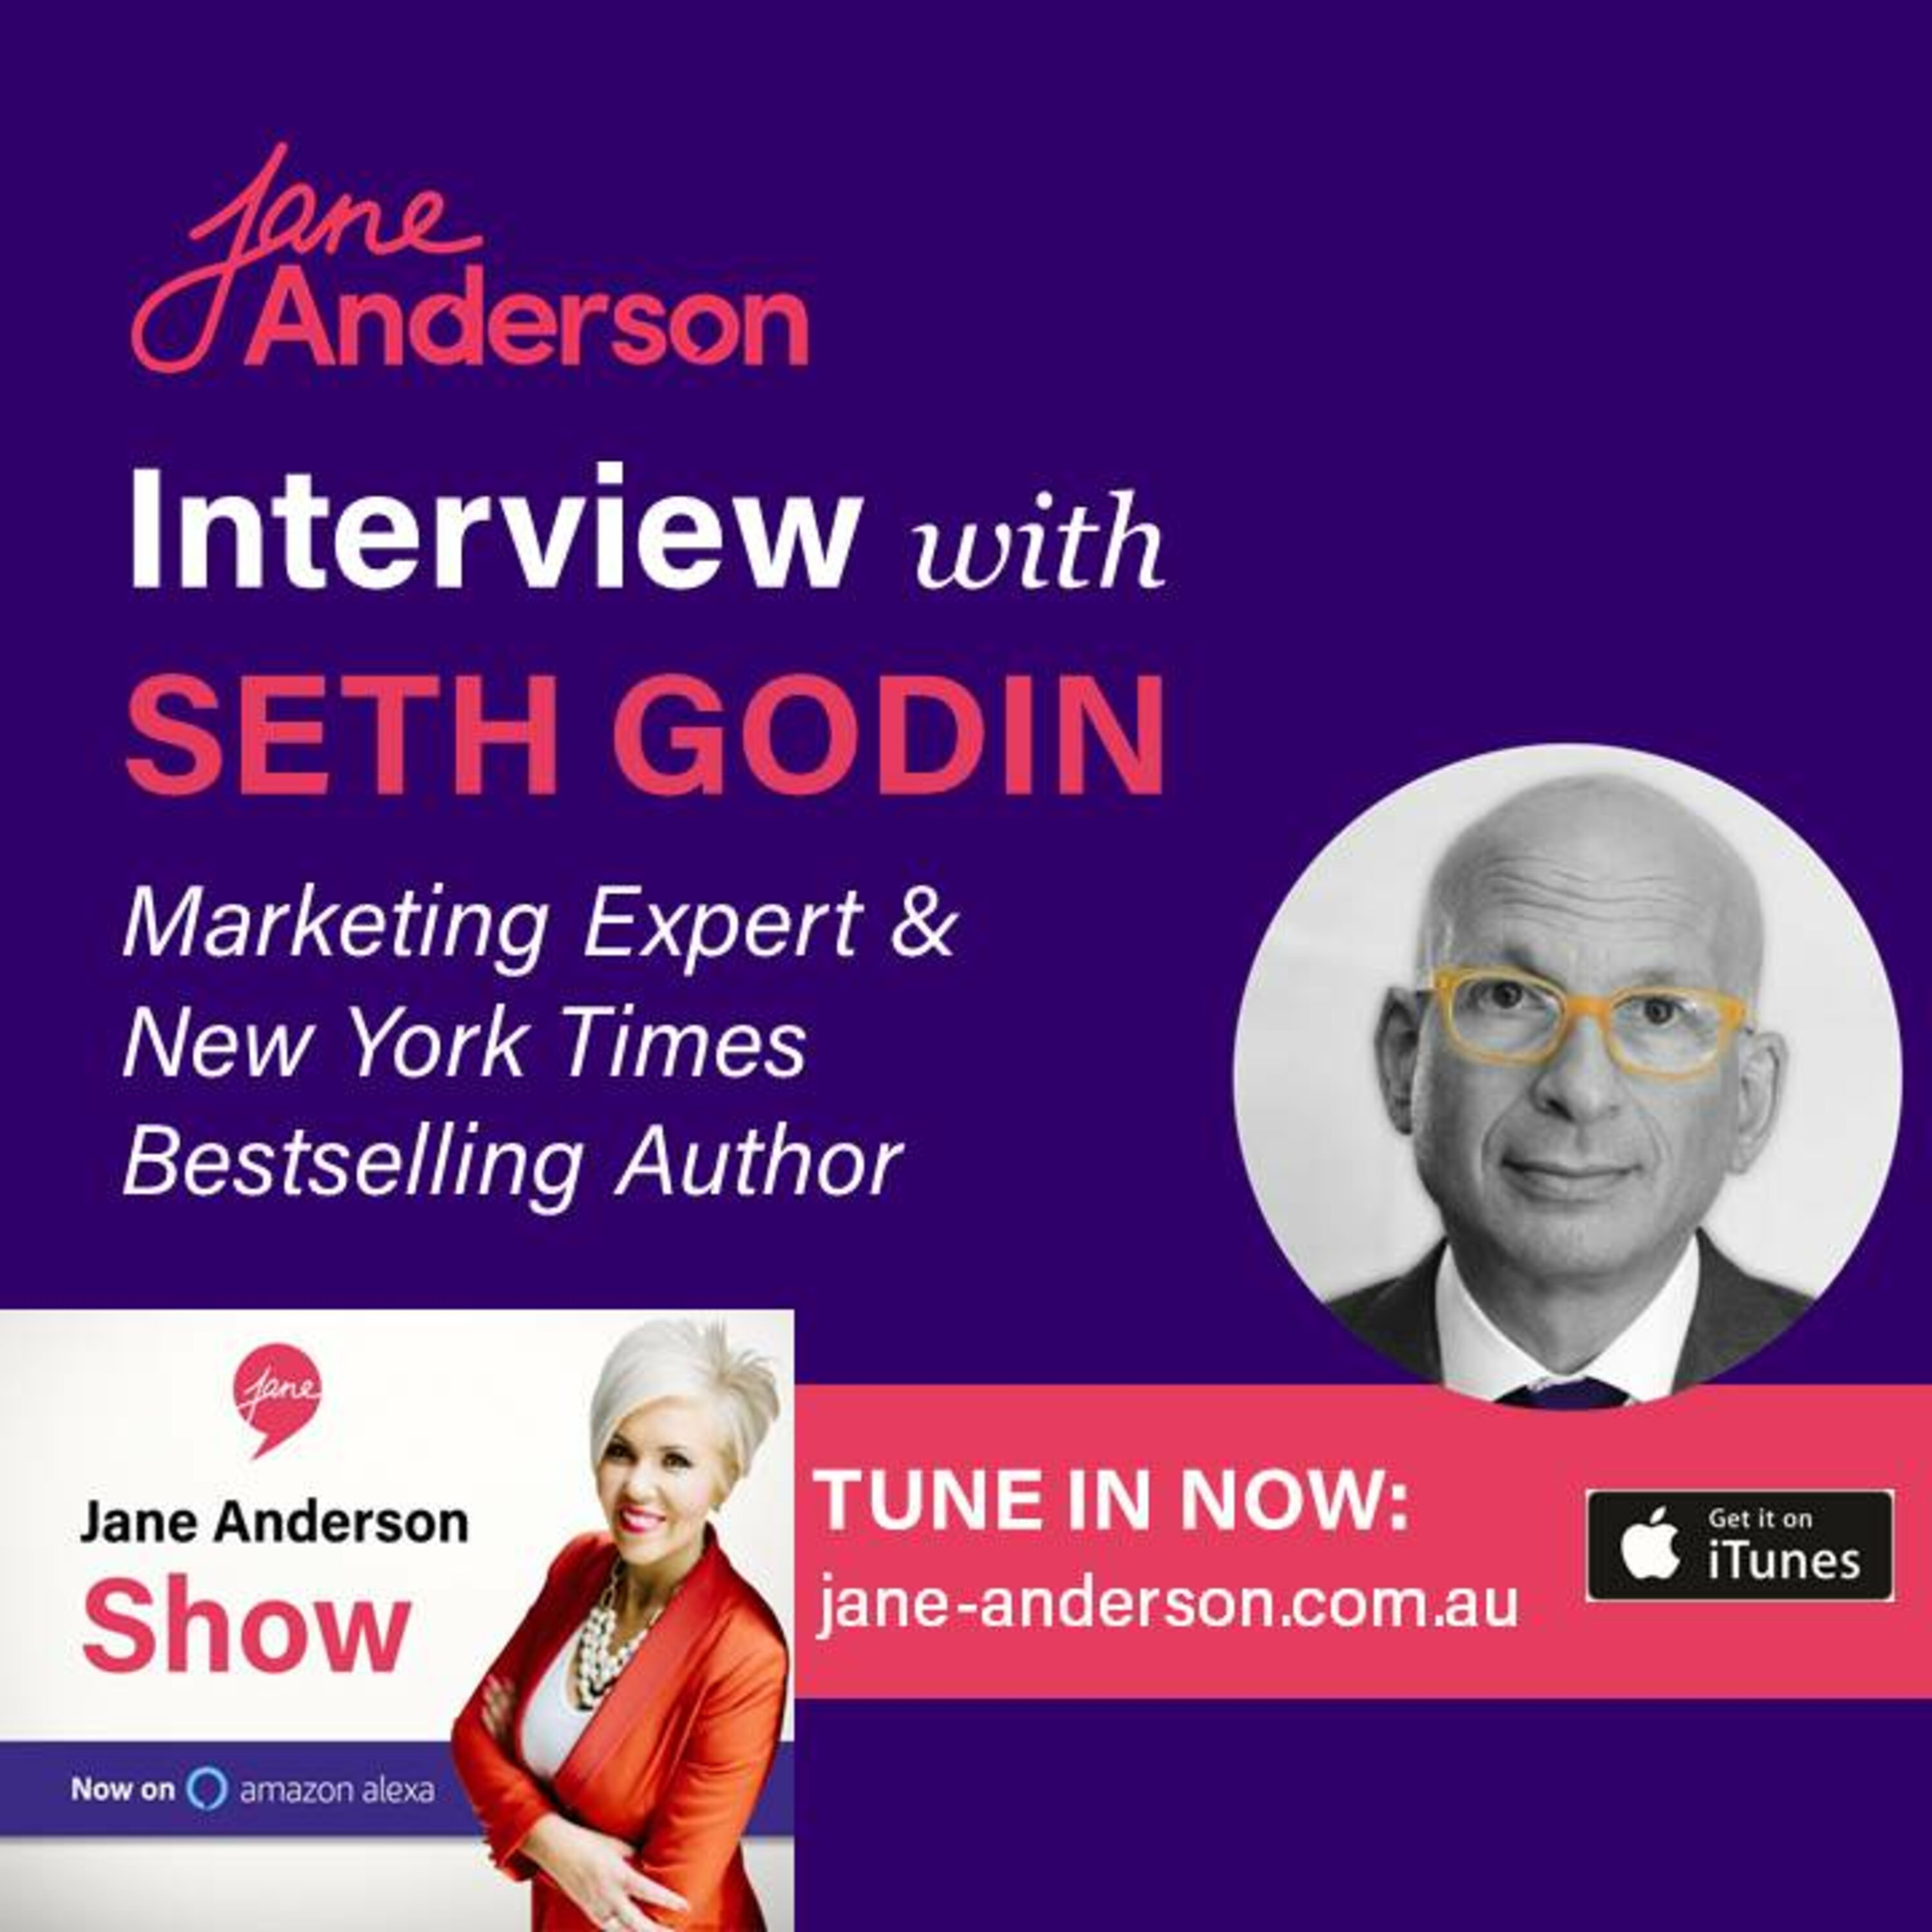 Episode 36 - Interview with Marketing Expert & NY Times Bestselling Author Seth Godin